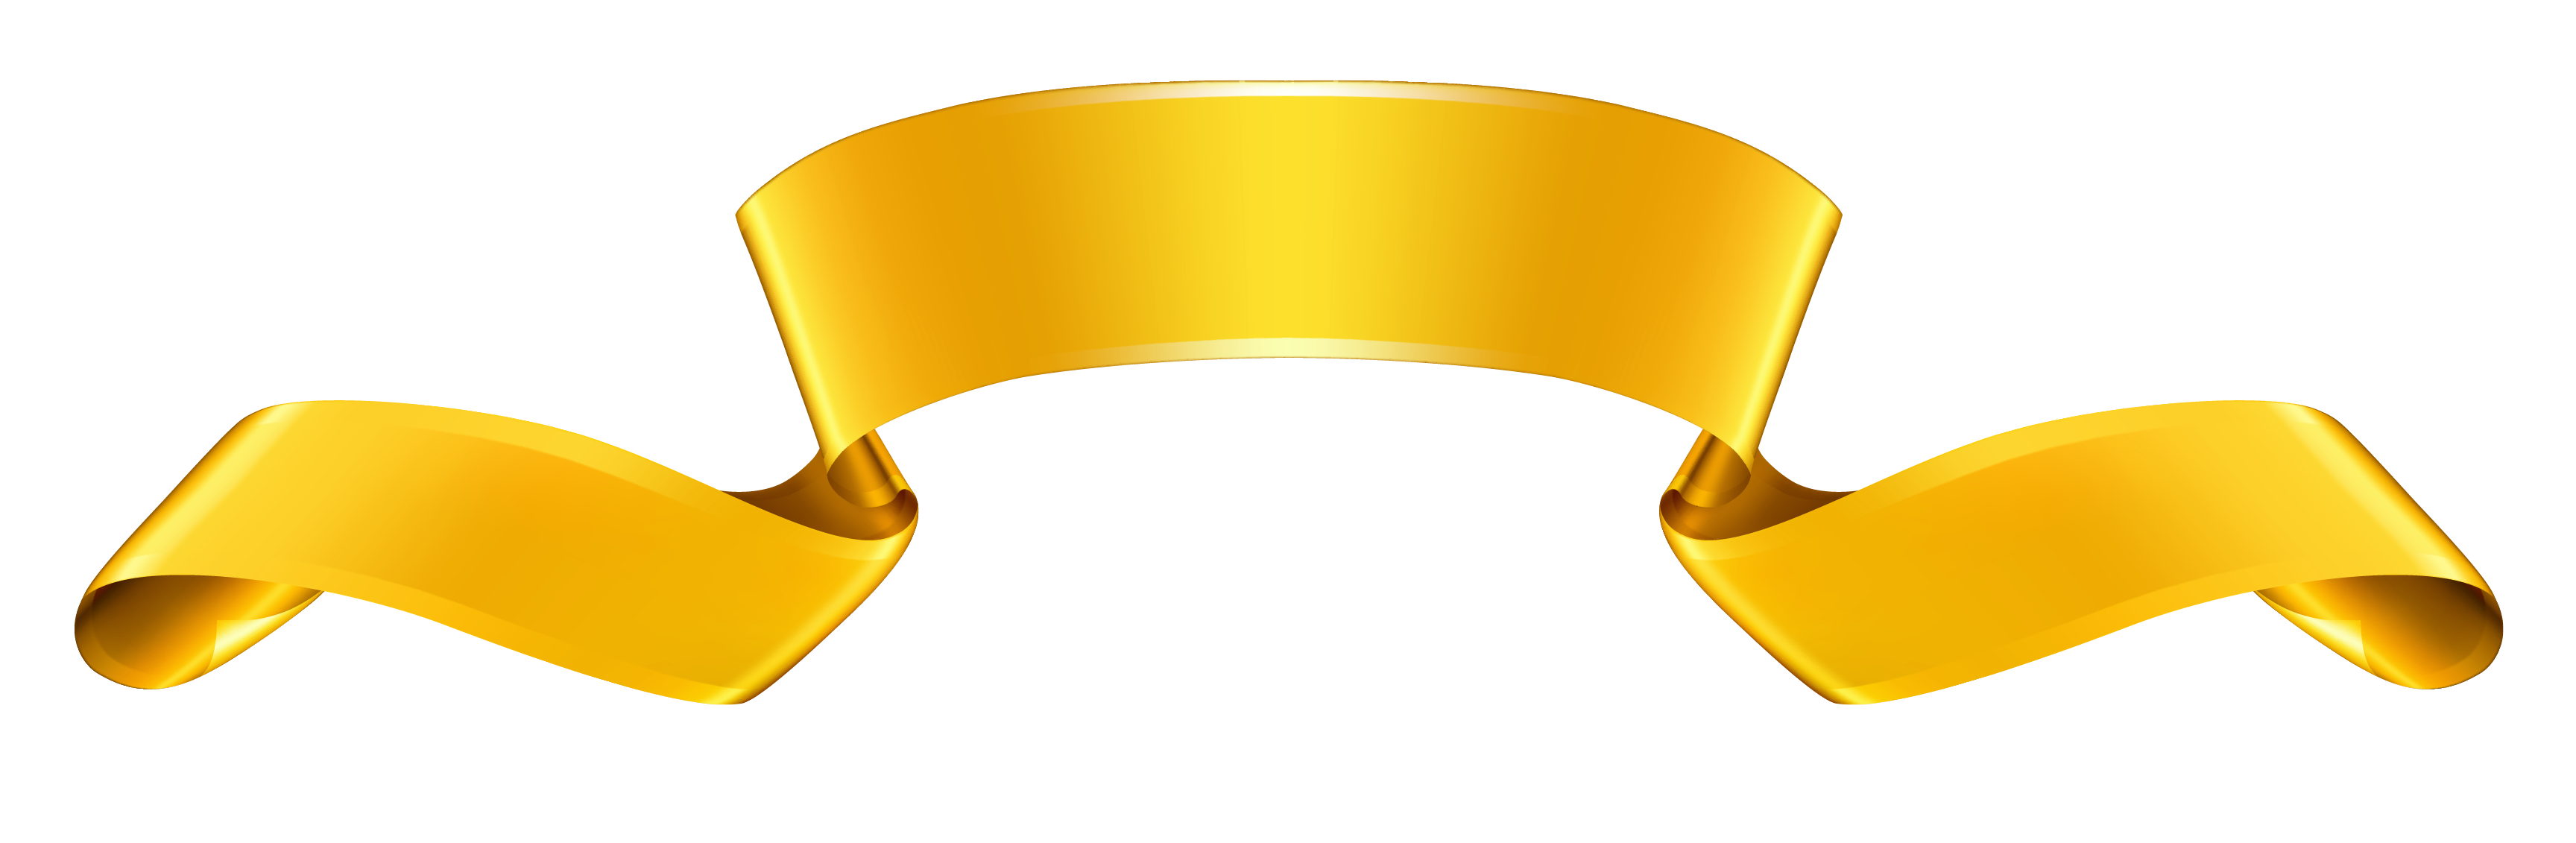 Gold Ribbon Clipart Free Download Best Gold Ribbon